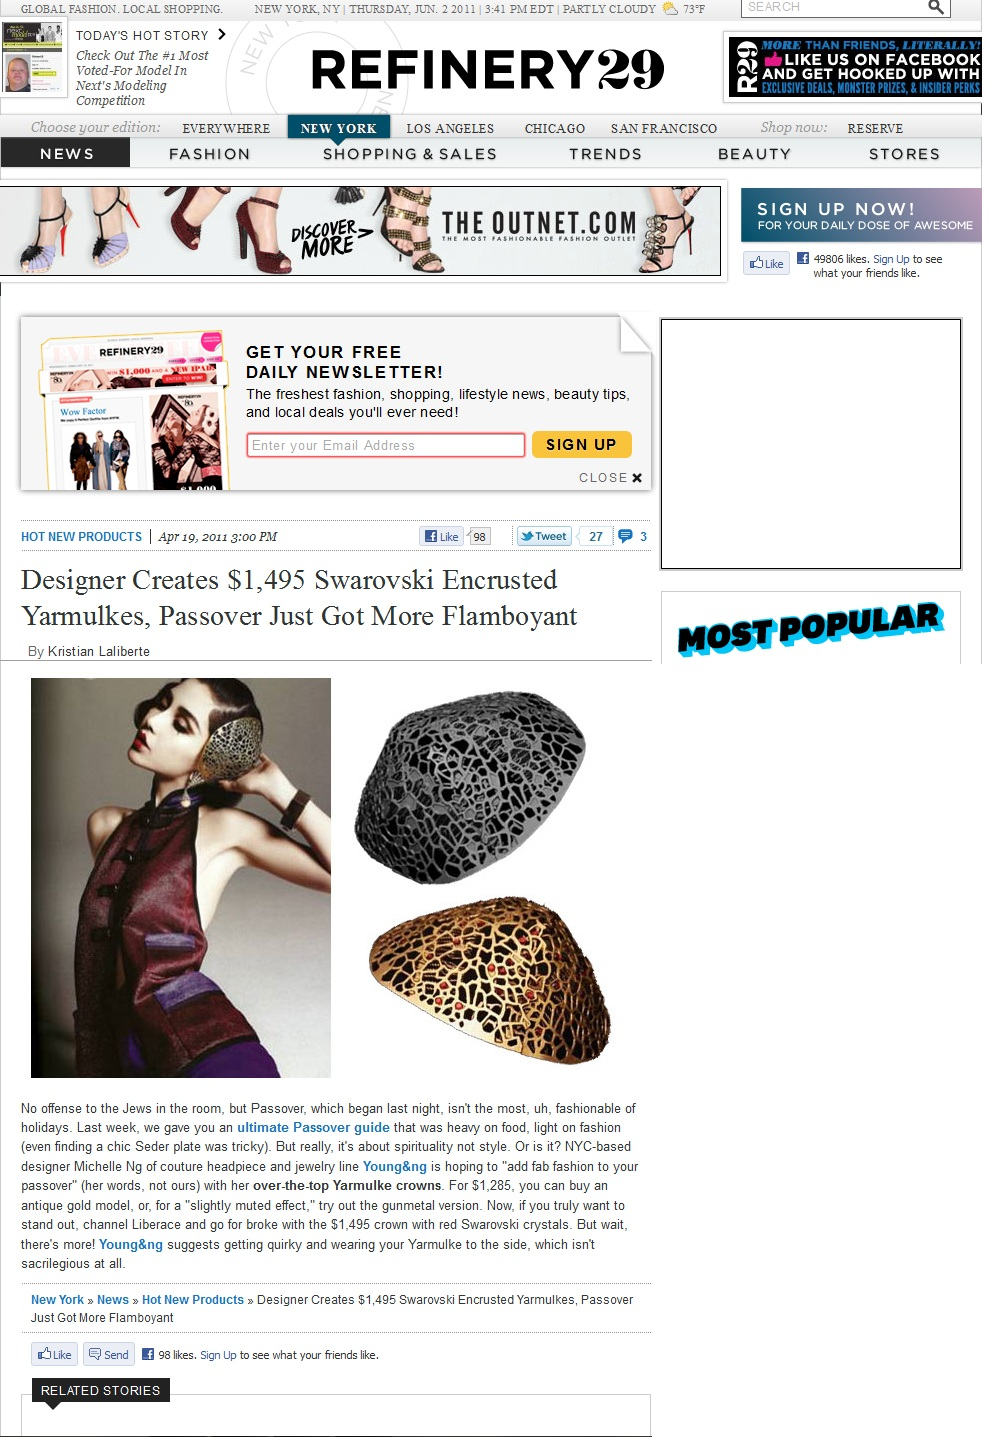 Young&ng's Swarvoski Encrusted Yarmulkes Featured on Refinery 29 (Fashion PR)